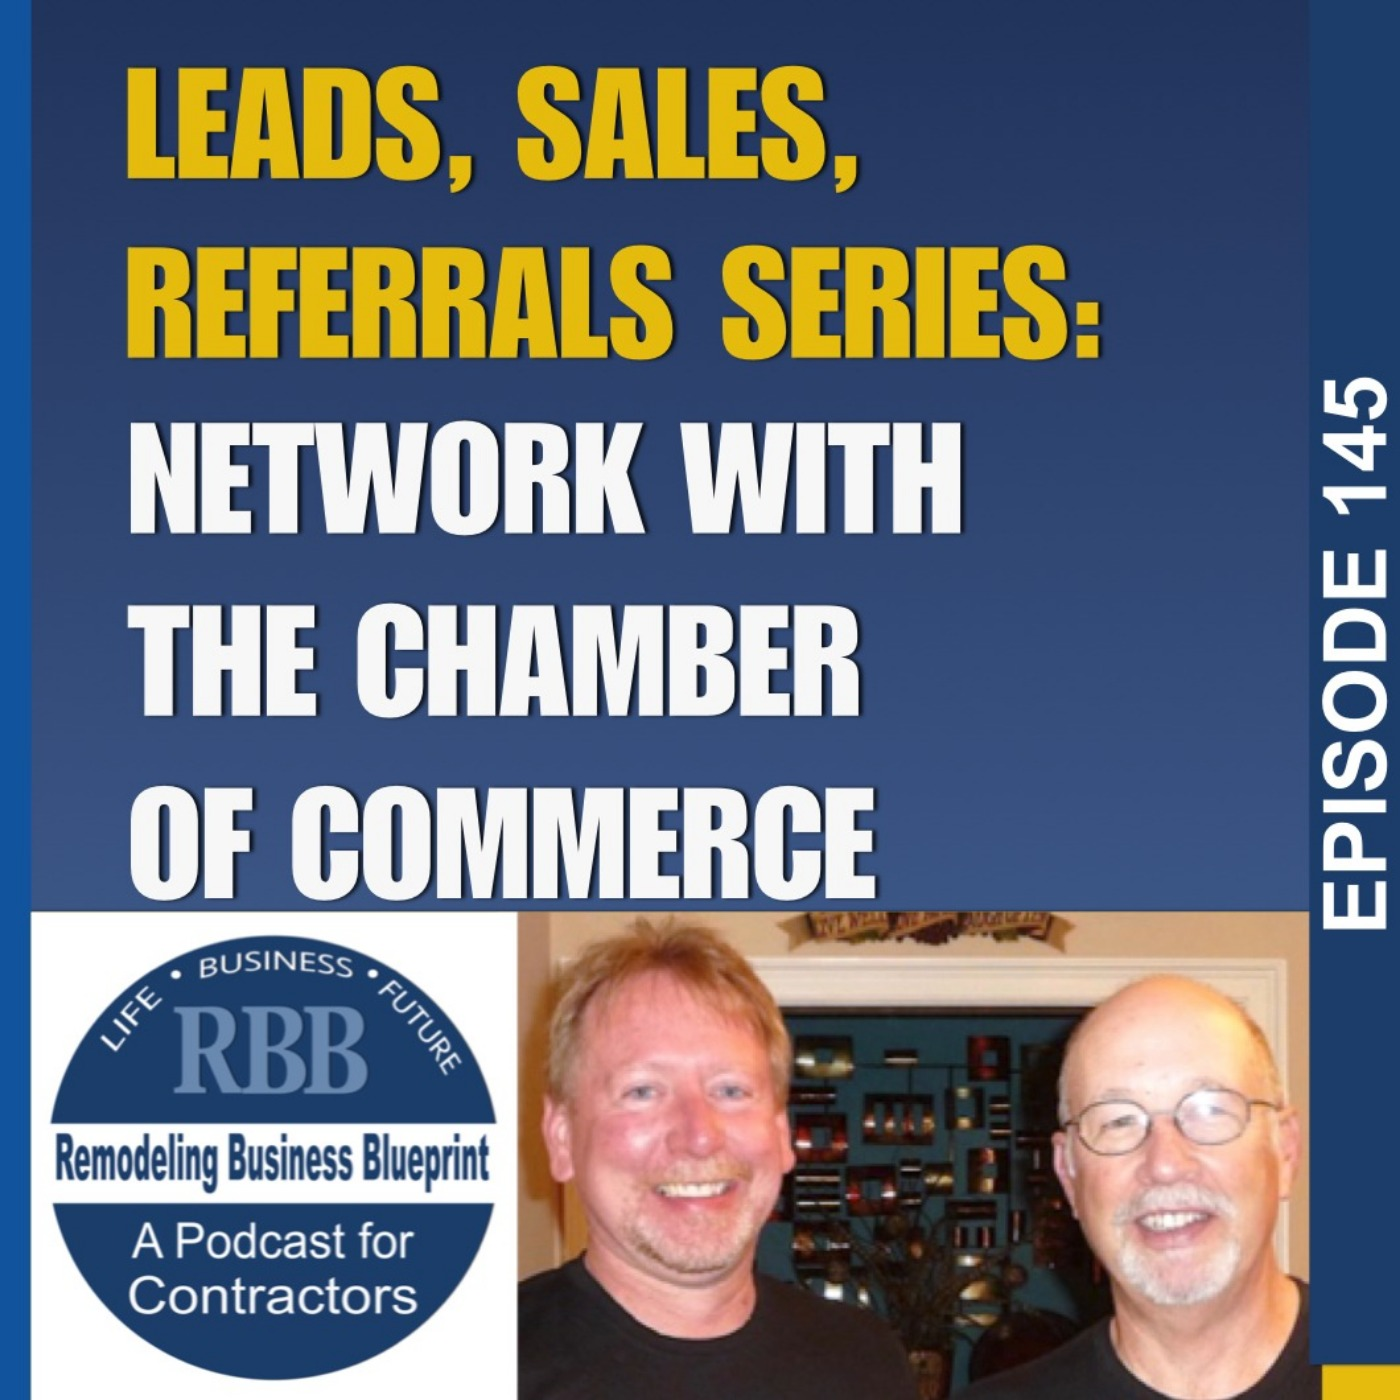 Network with The Chamber of Commerce